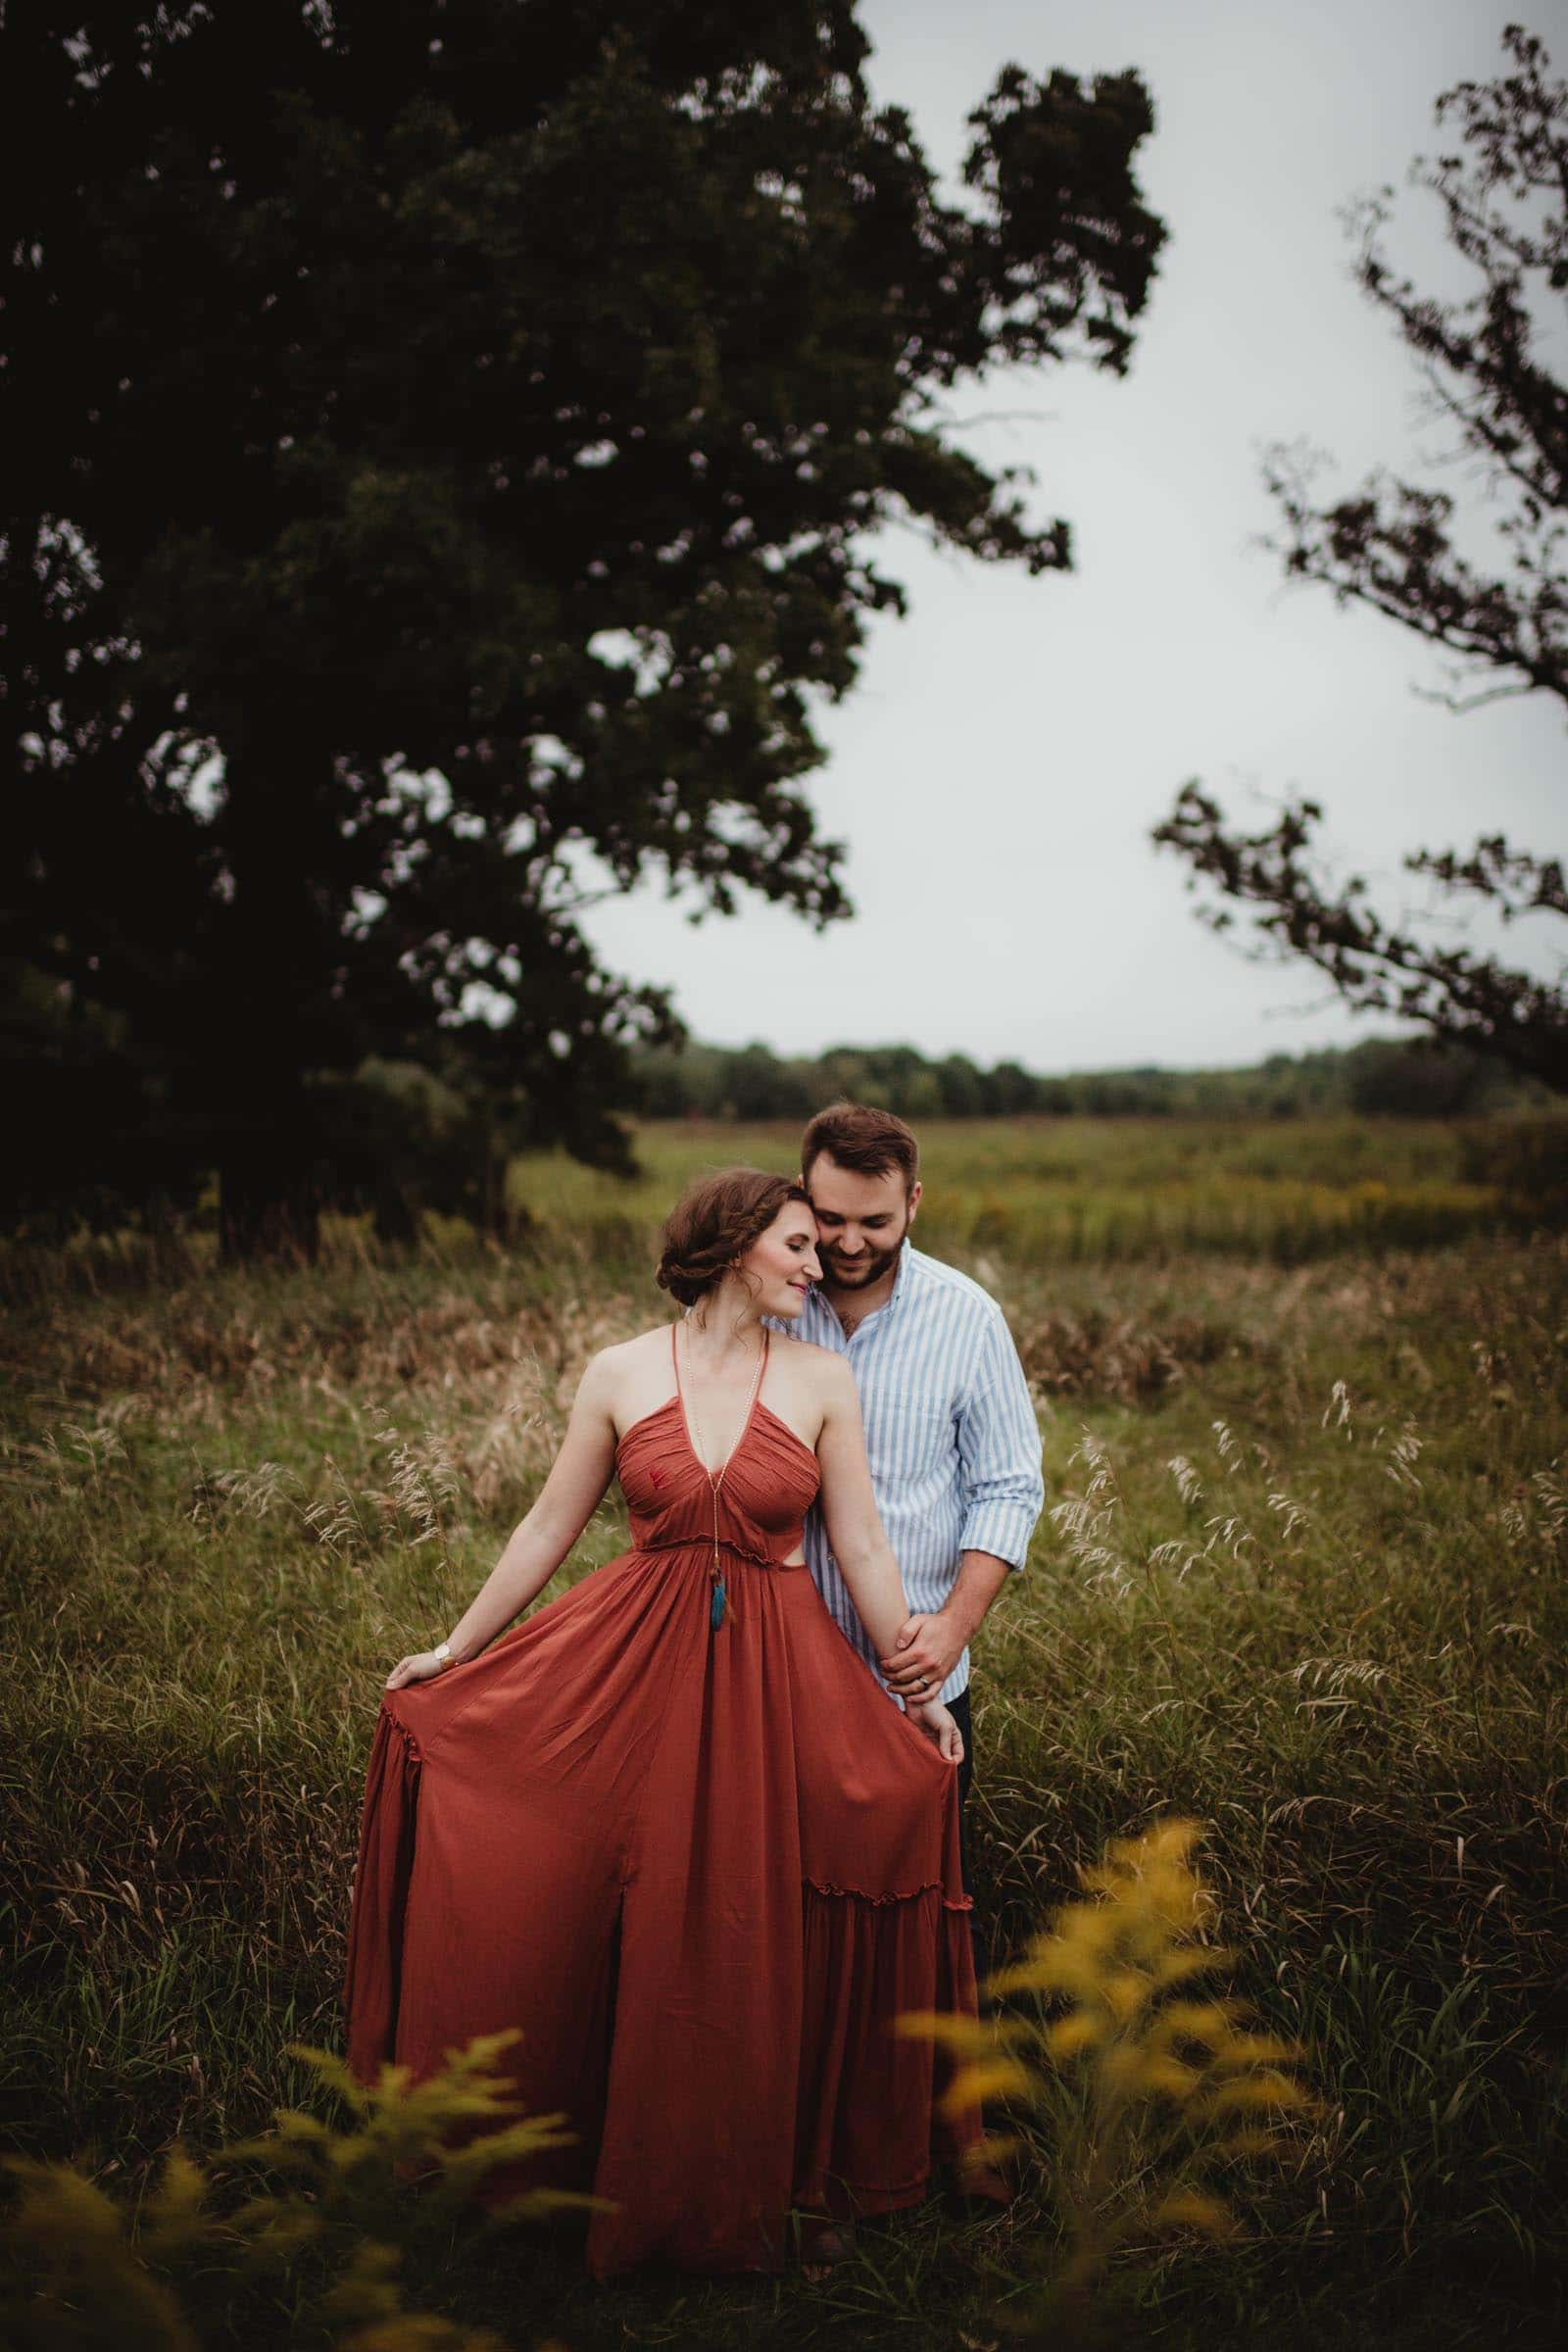 Couple in Field Woman in Rust Colored Dress